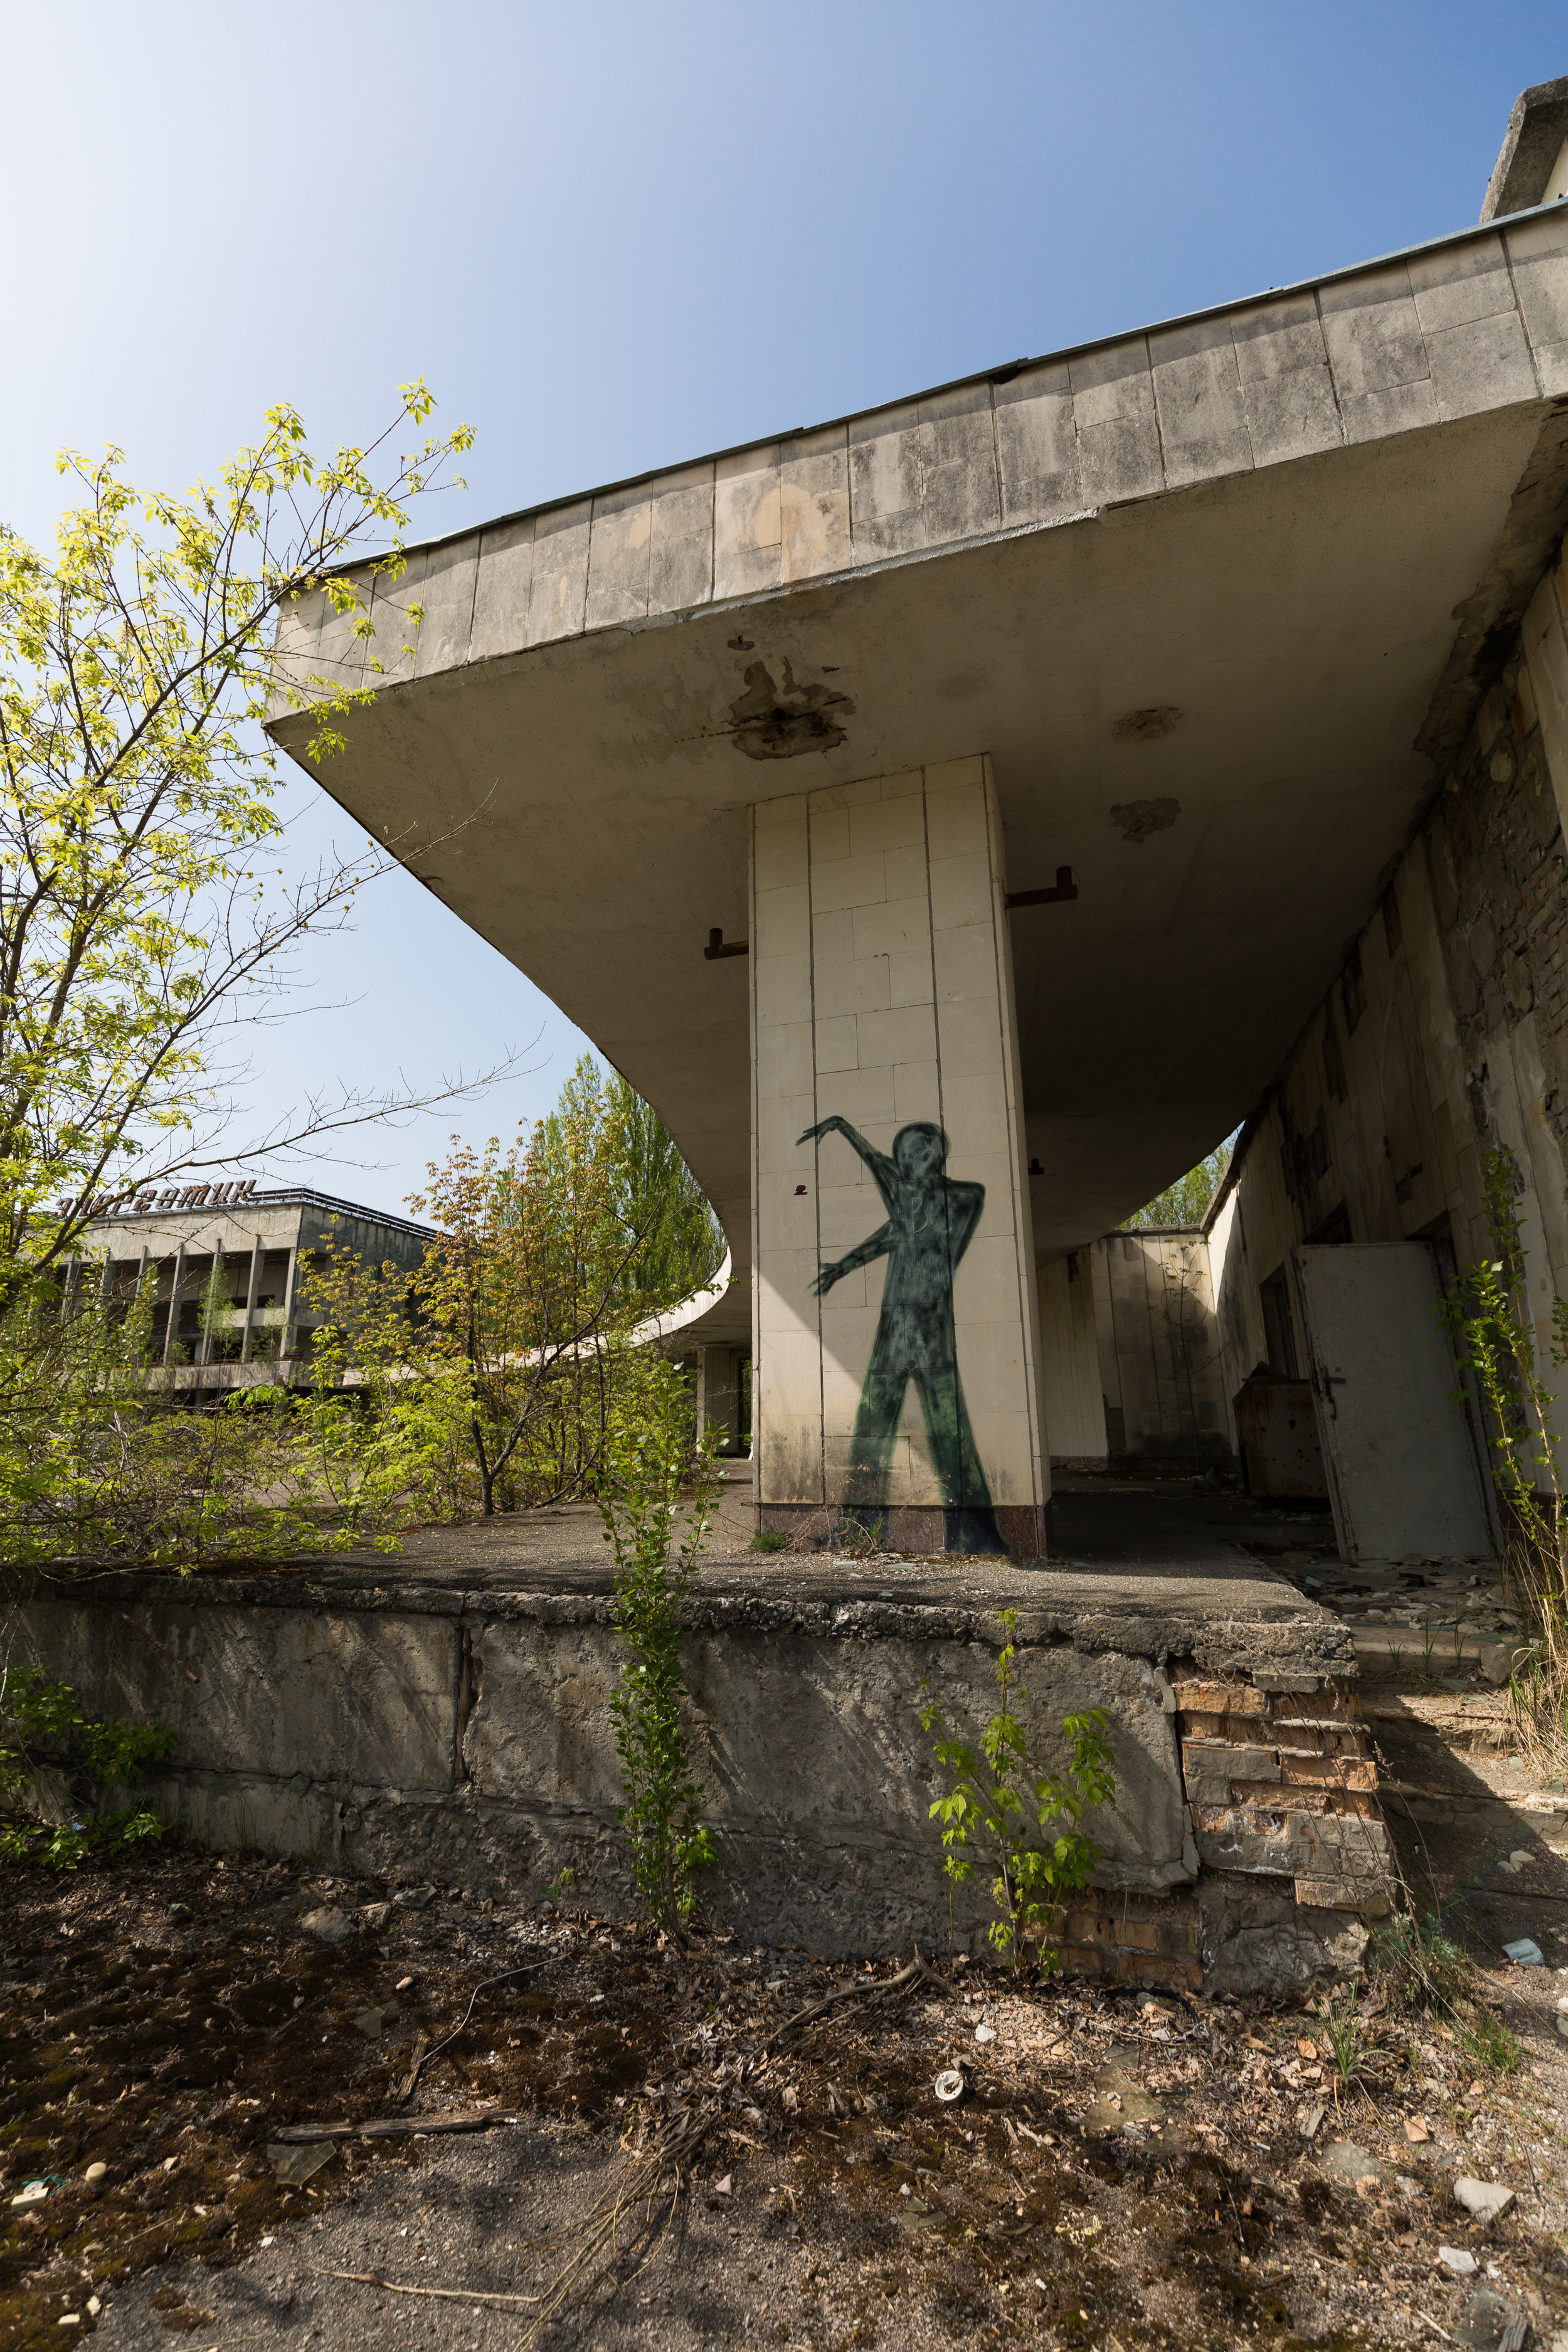 Personal Accounts From the Chernobyl Exclusion Zone